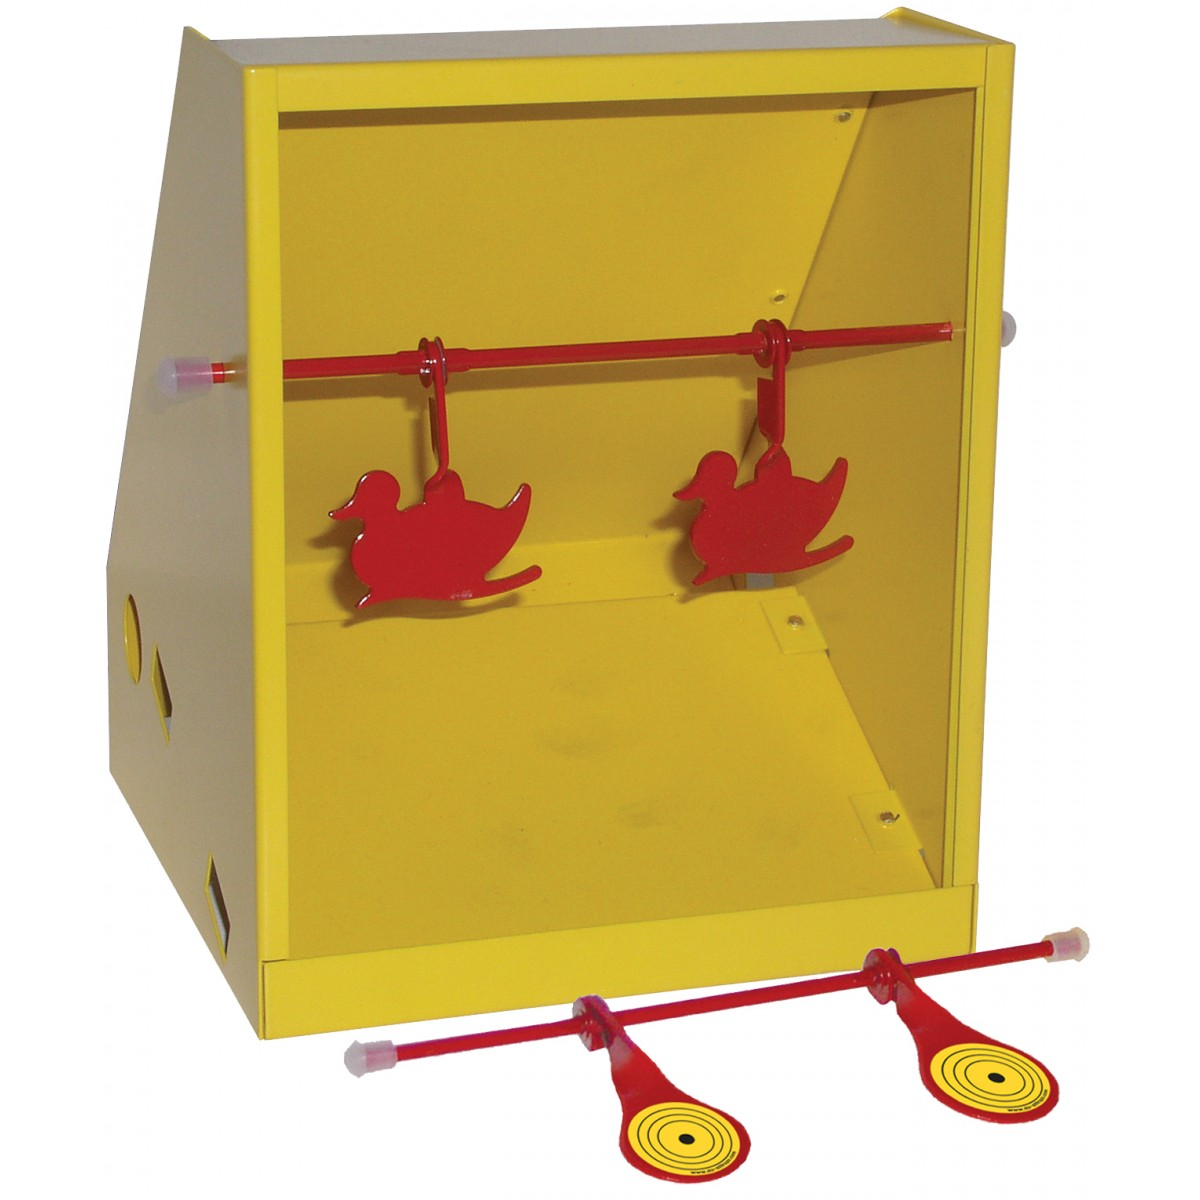 Pods Moving And Storage >> Do-All Outdoors - AIR STRIKE PELLET TRAP - Air Rifle Target - 800 fps